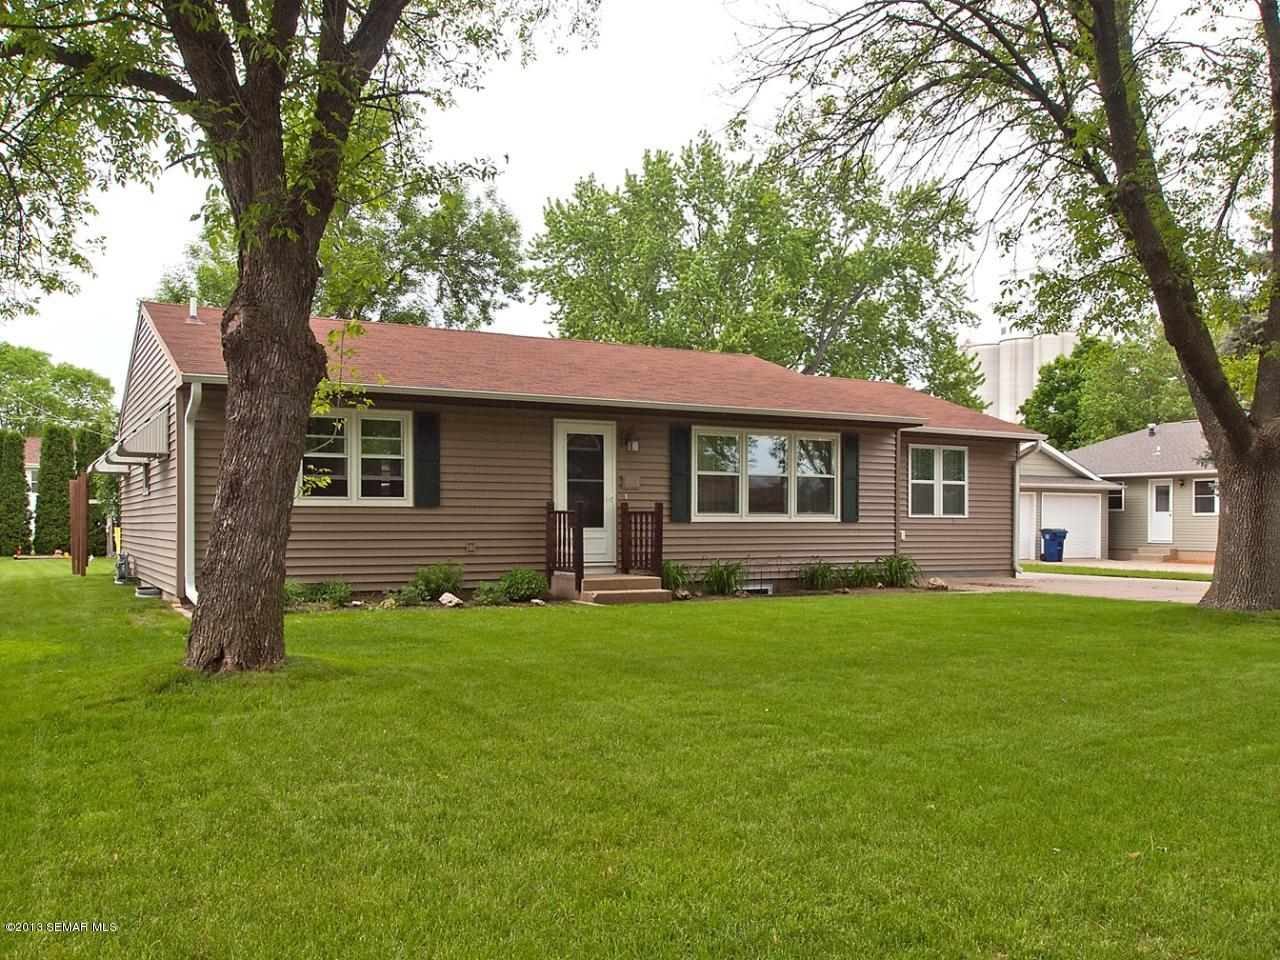 1008 W Elm St, Lake City, MN 55041